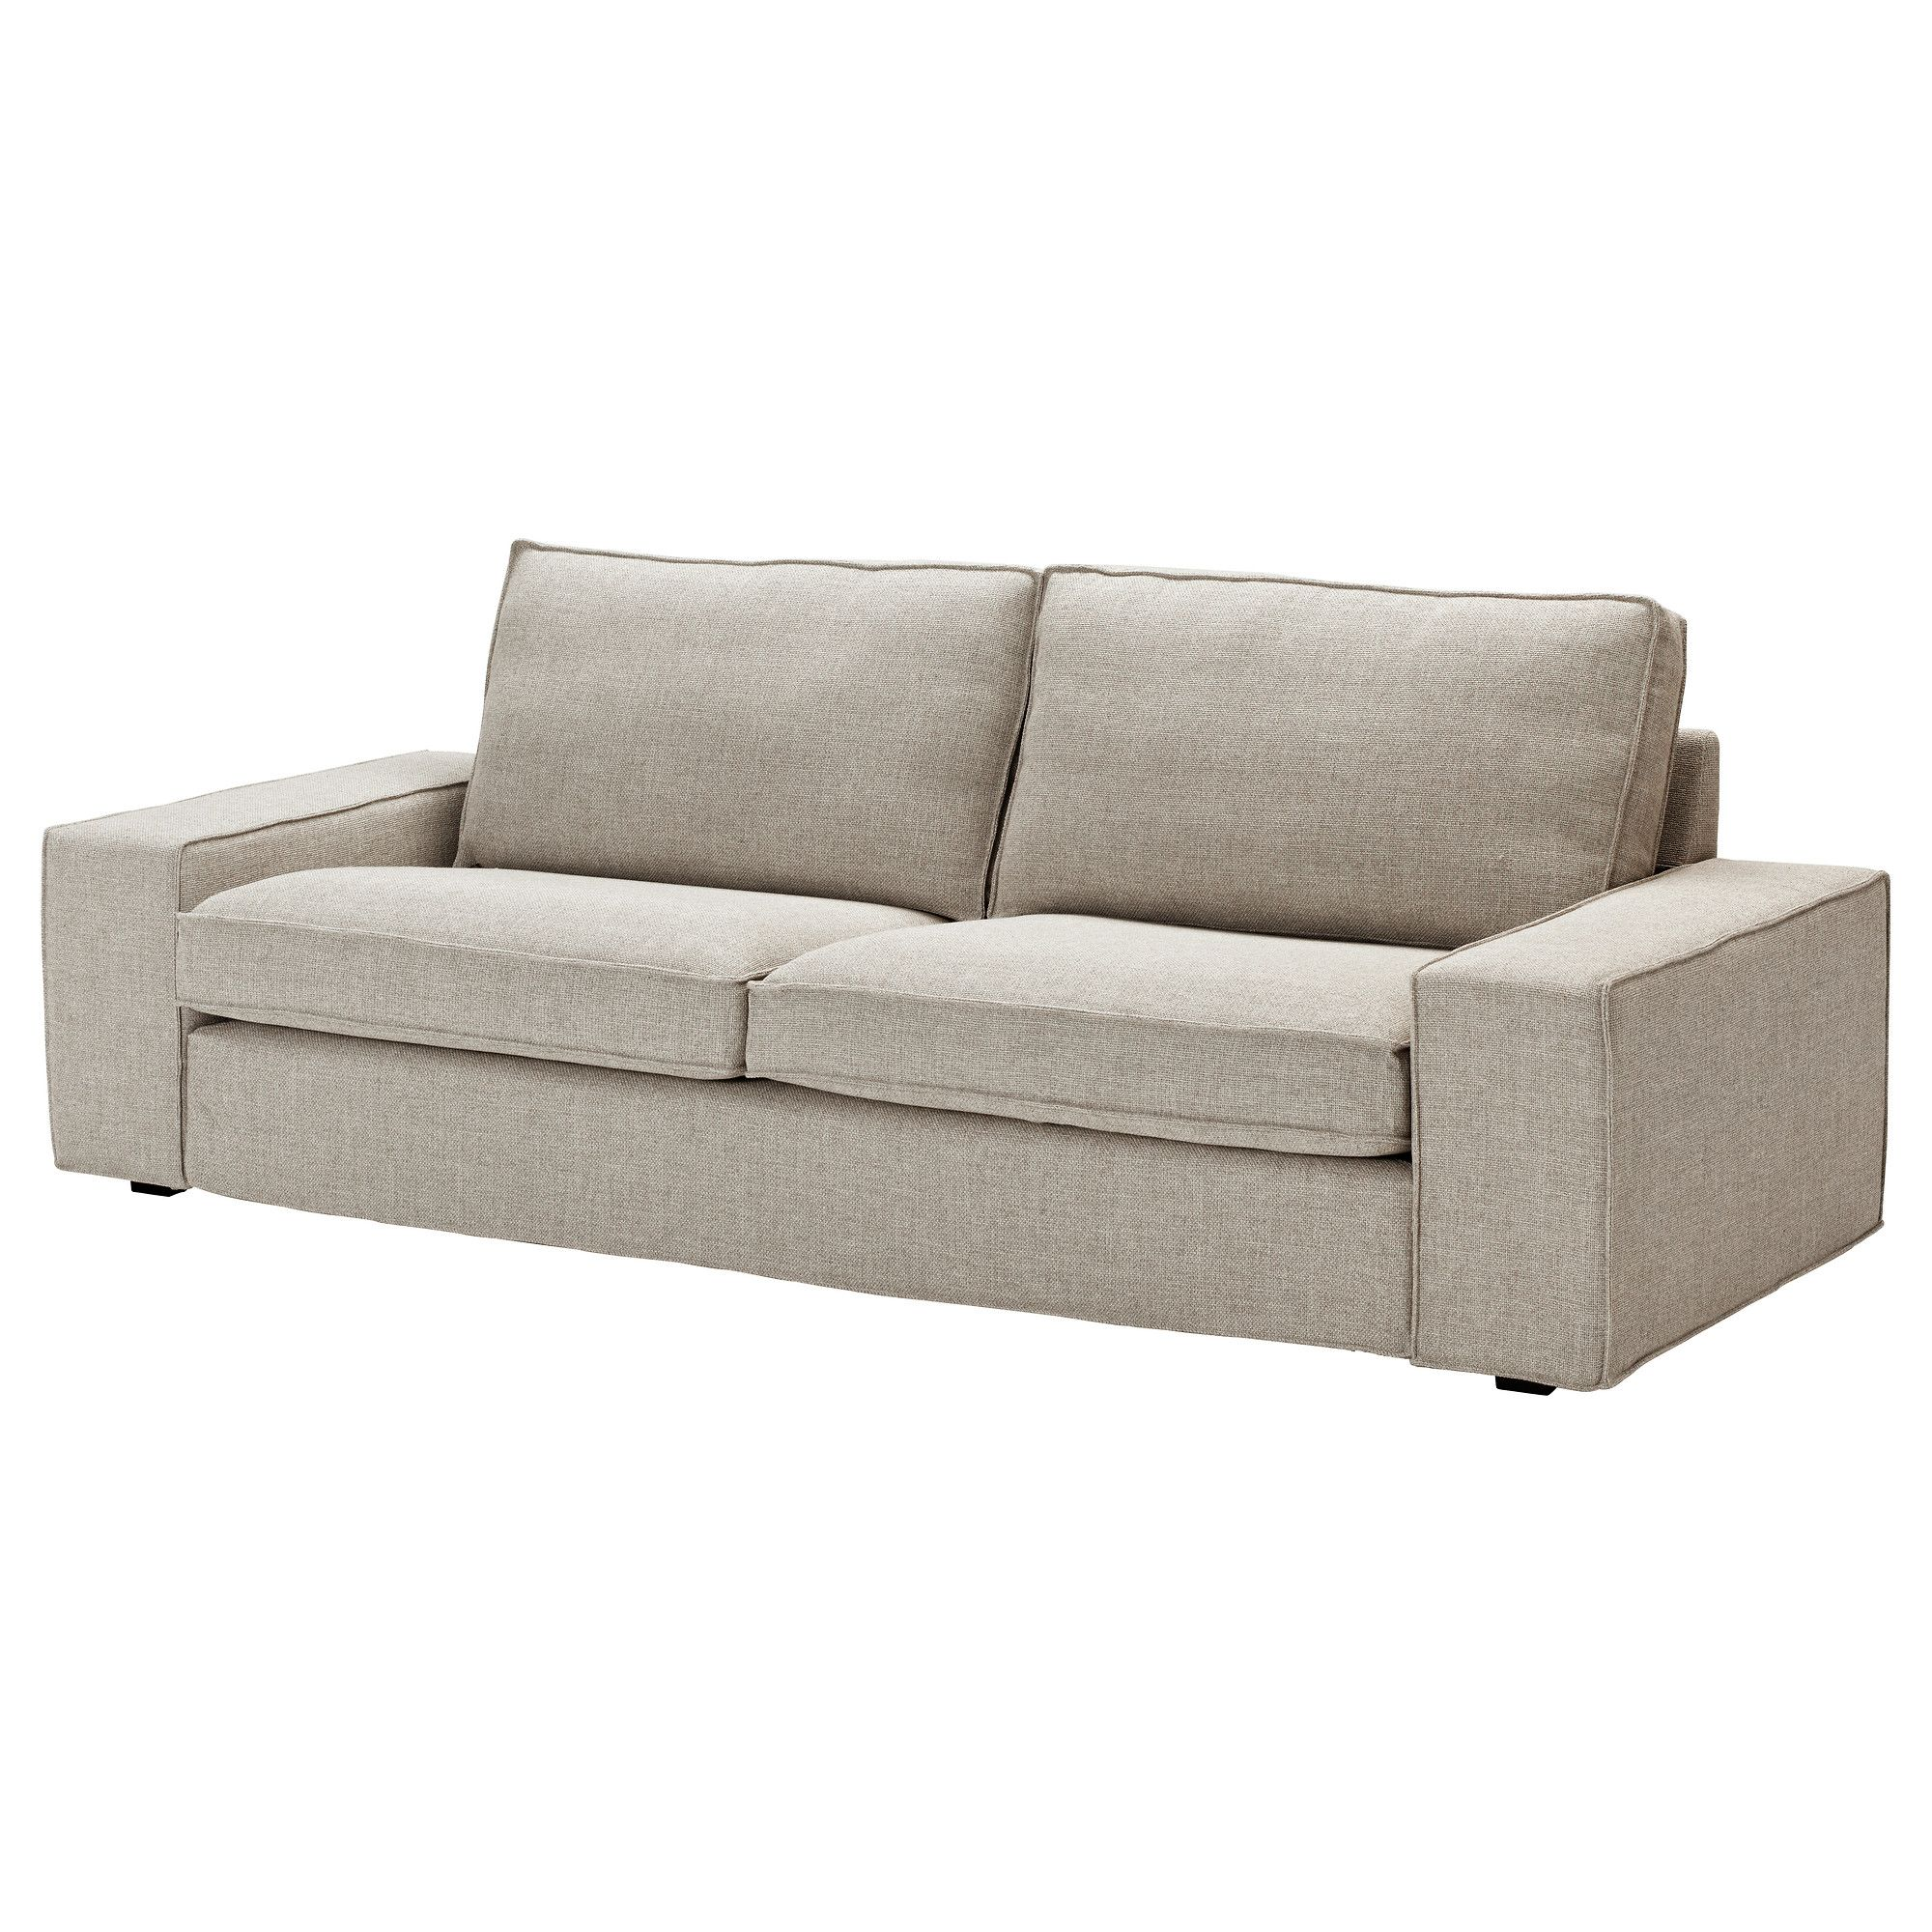 Bettsofa Kivik Ikea Kivik Loveseat Tenö Light Gray For Our Home Haus